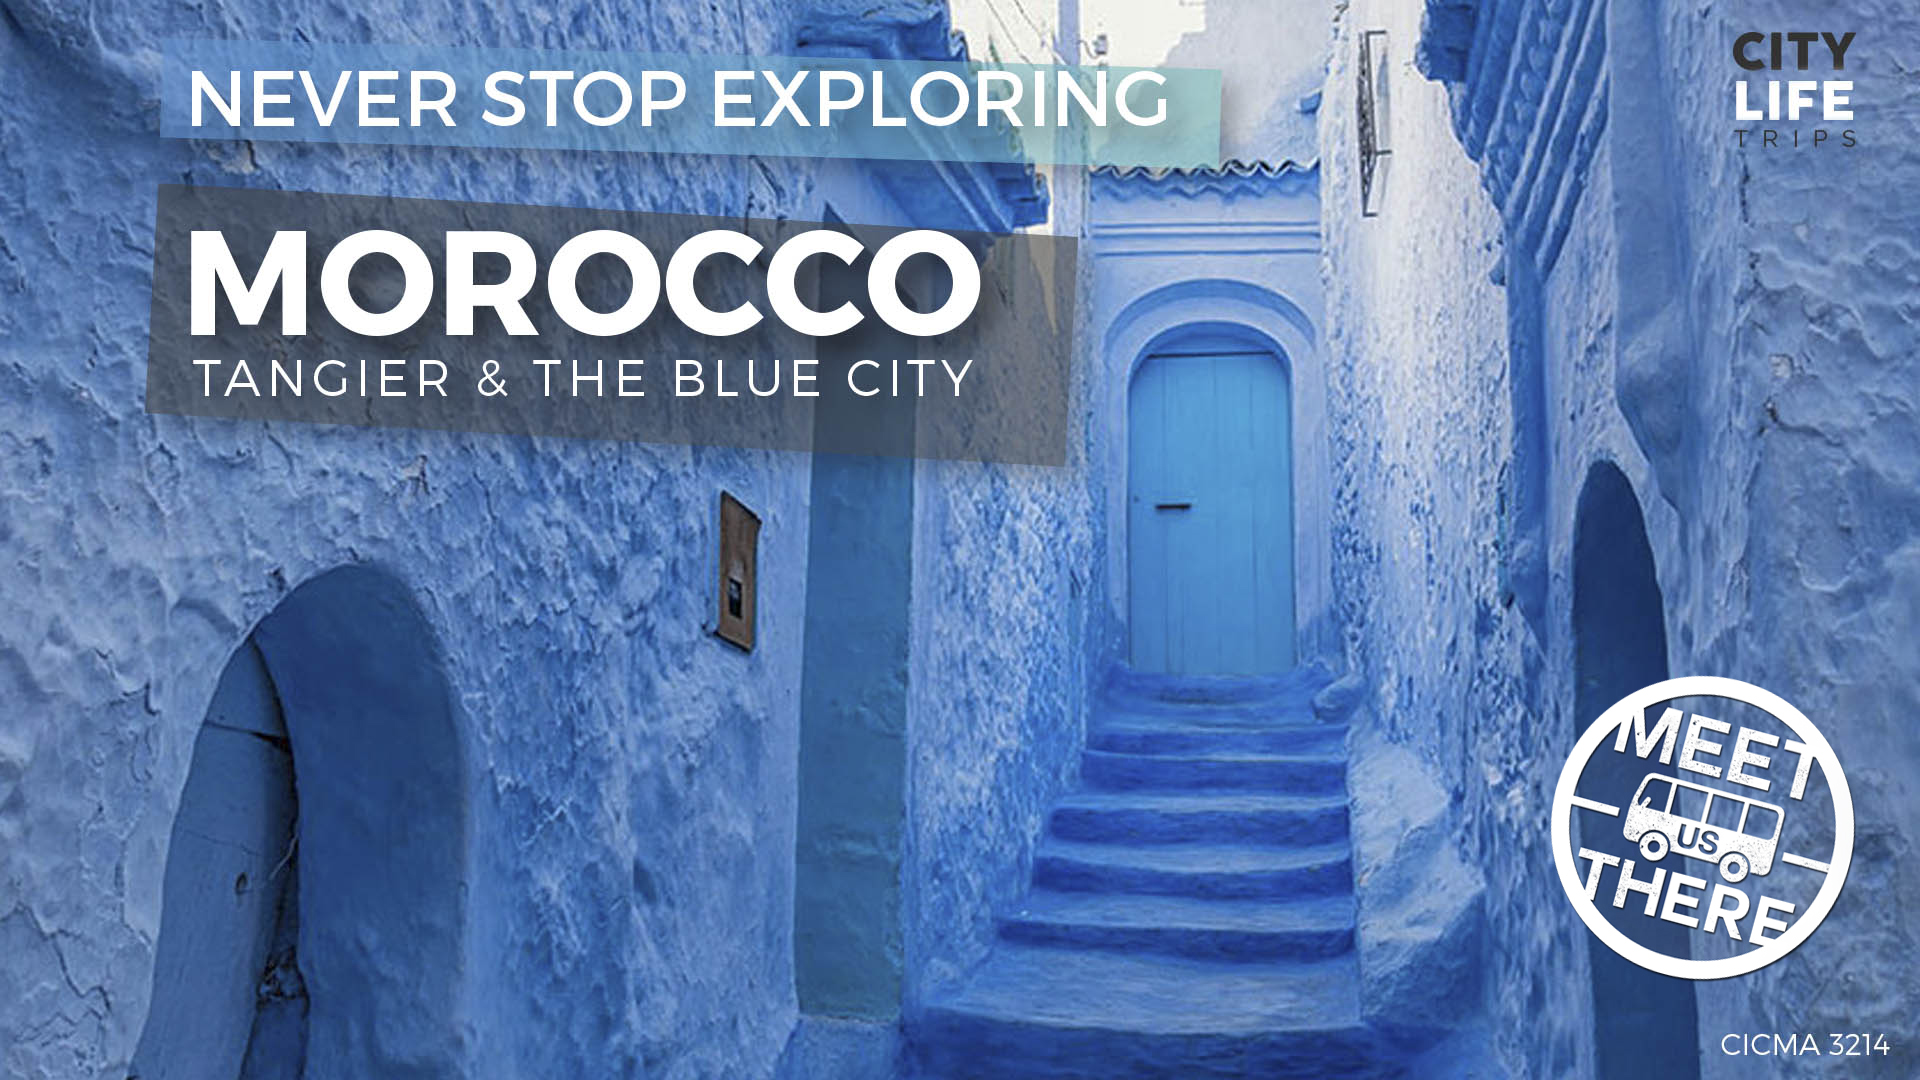 Northern Morocco #1 – Tangier & The Blue City (Meet us there)